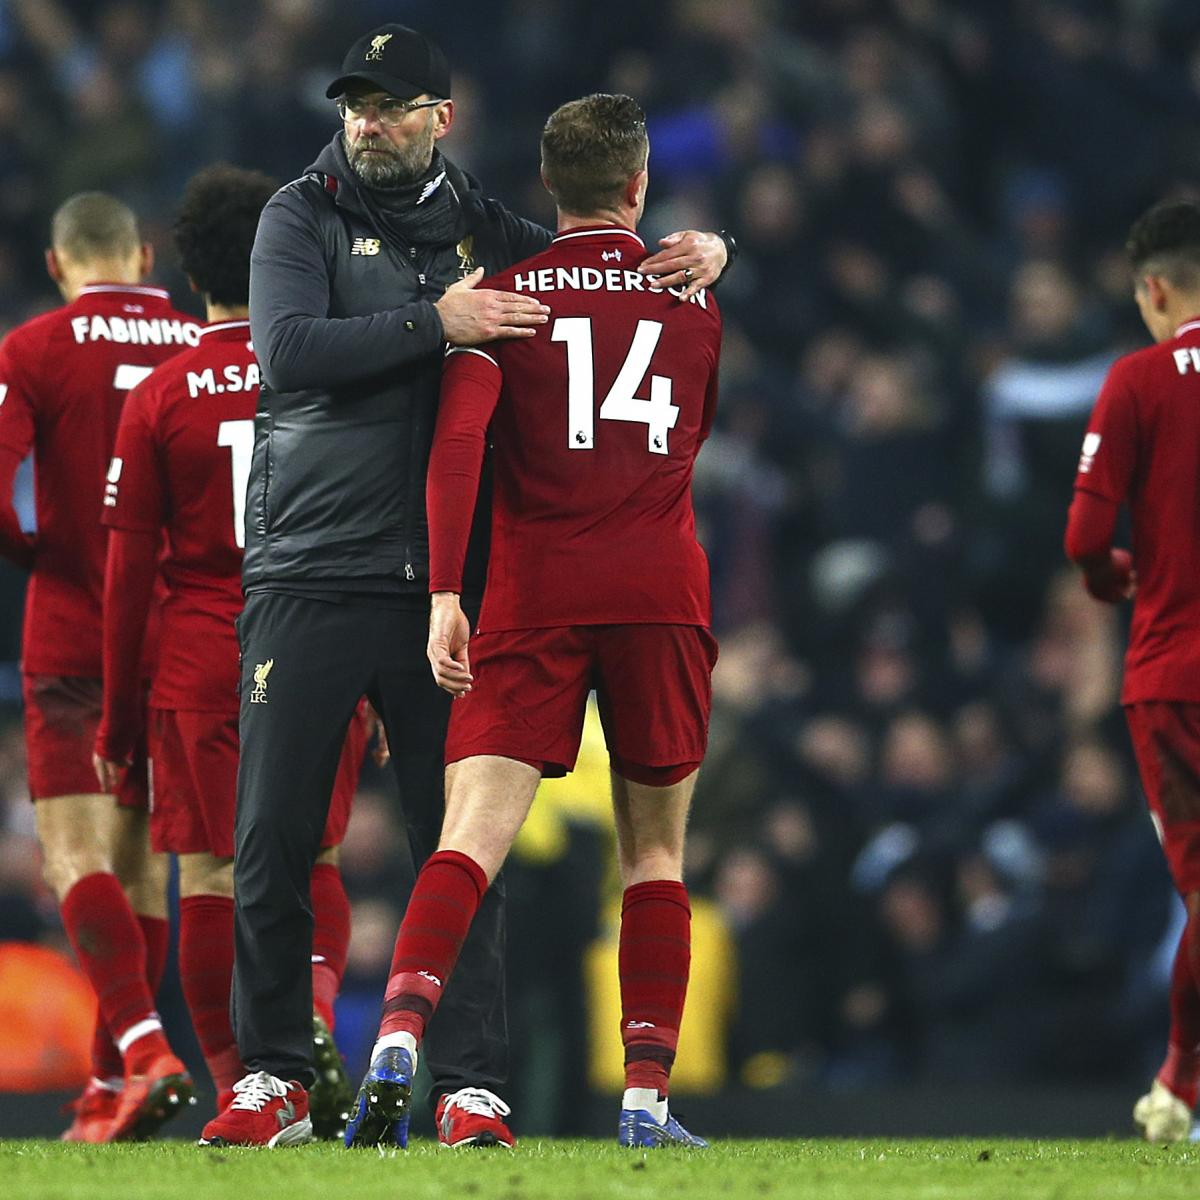 Live Streaming Soccer News Liverpool Vs Benfica Live: Wolves Vs. Liverpool: FA Cup 2019 Odds, Live Stream, TV